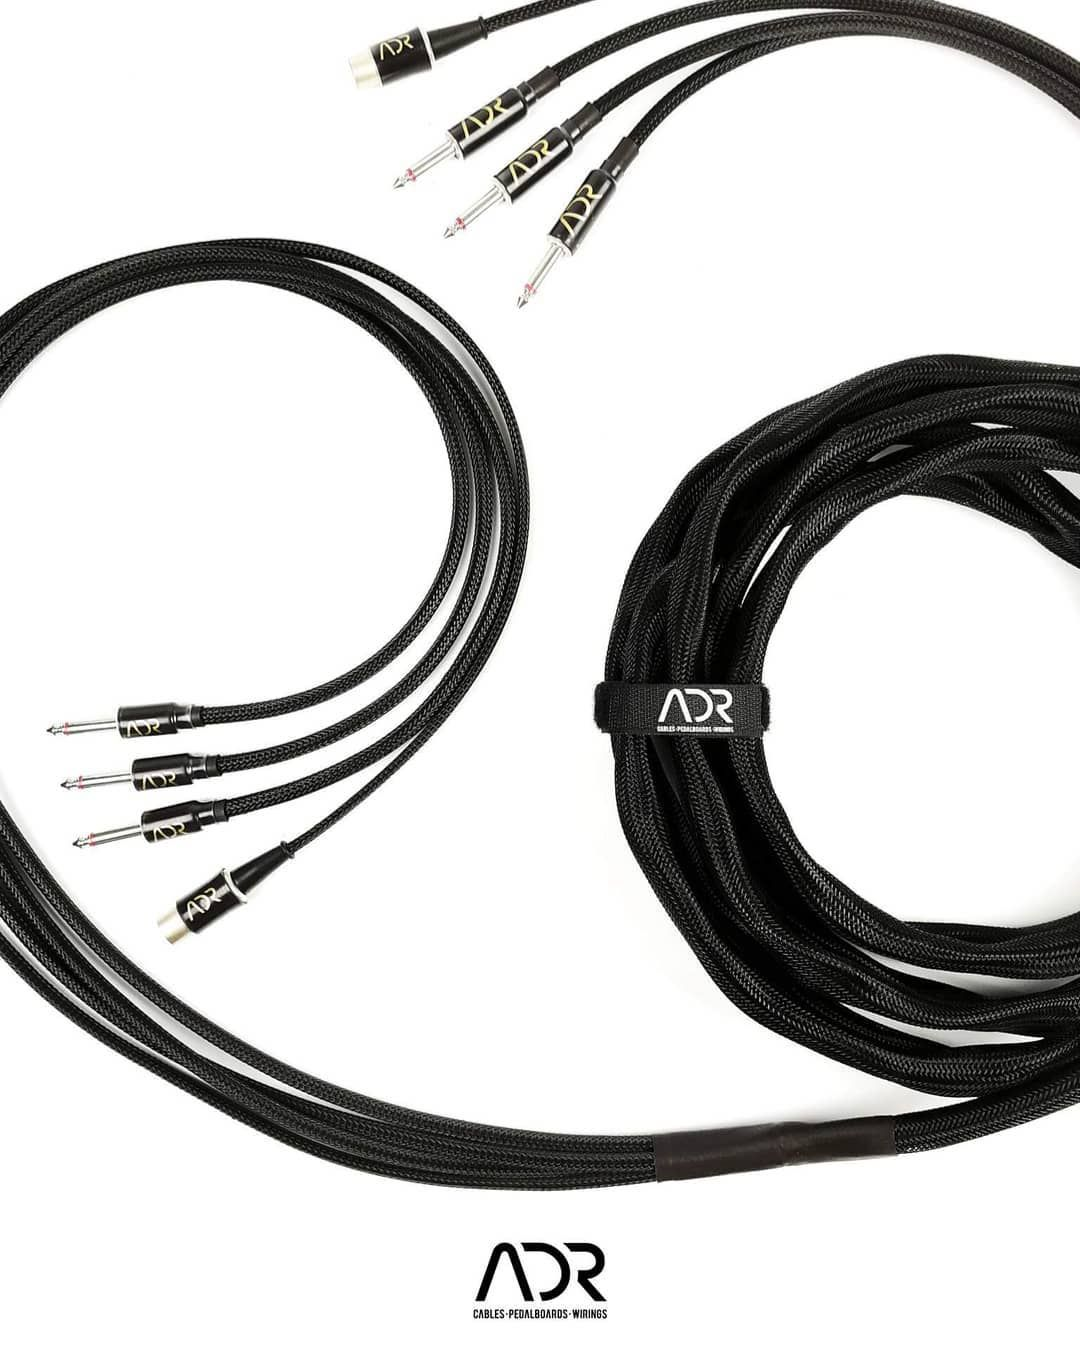 Groovy Adr Custom Hiend Braided Snake Cable Midi Cable The Perfect Amp Wiring Digital Resources Anistprontobusorg